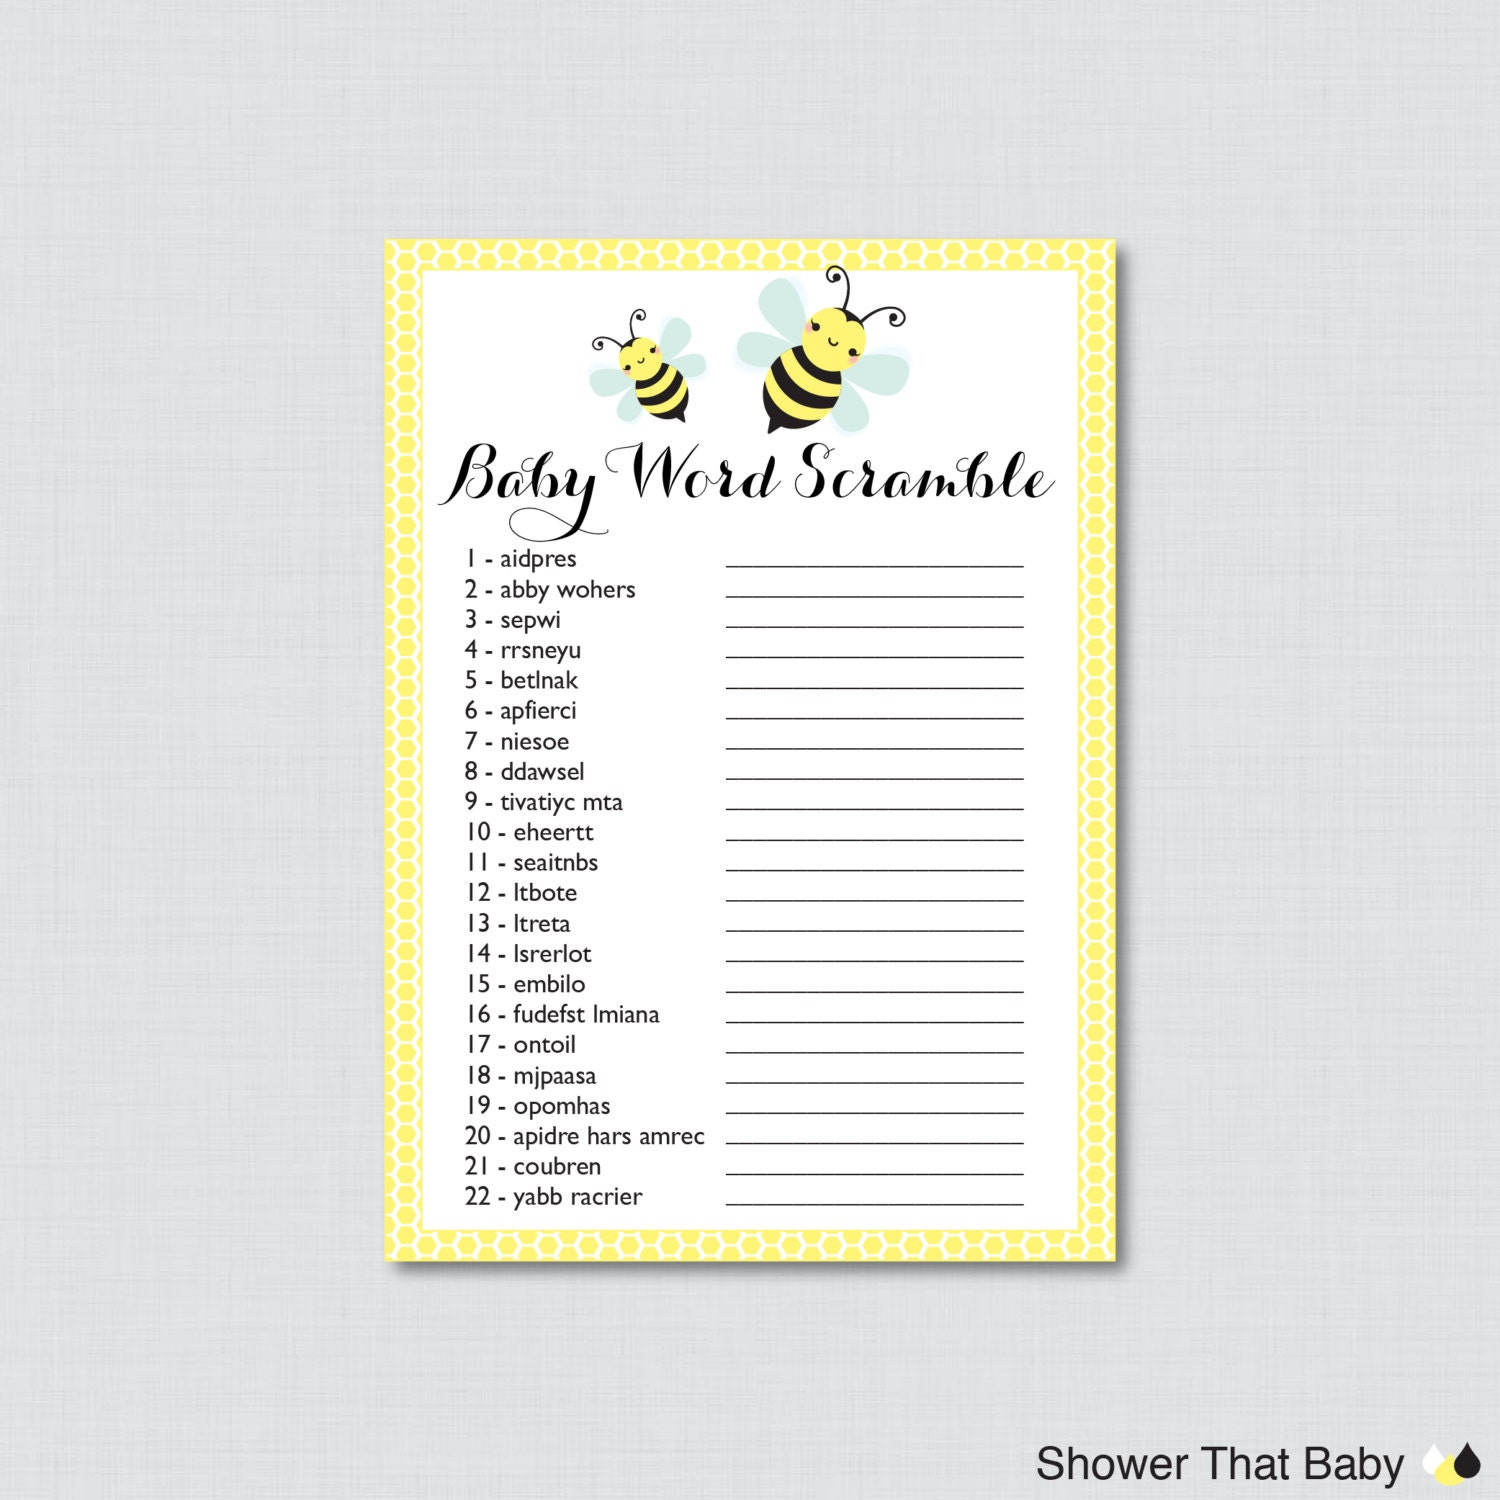 bumble bee baby shower word scramble game in yellow